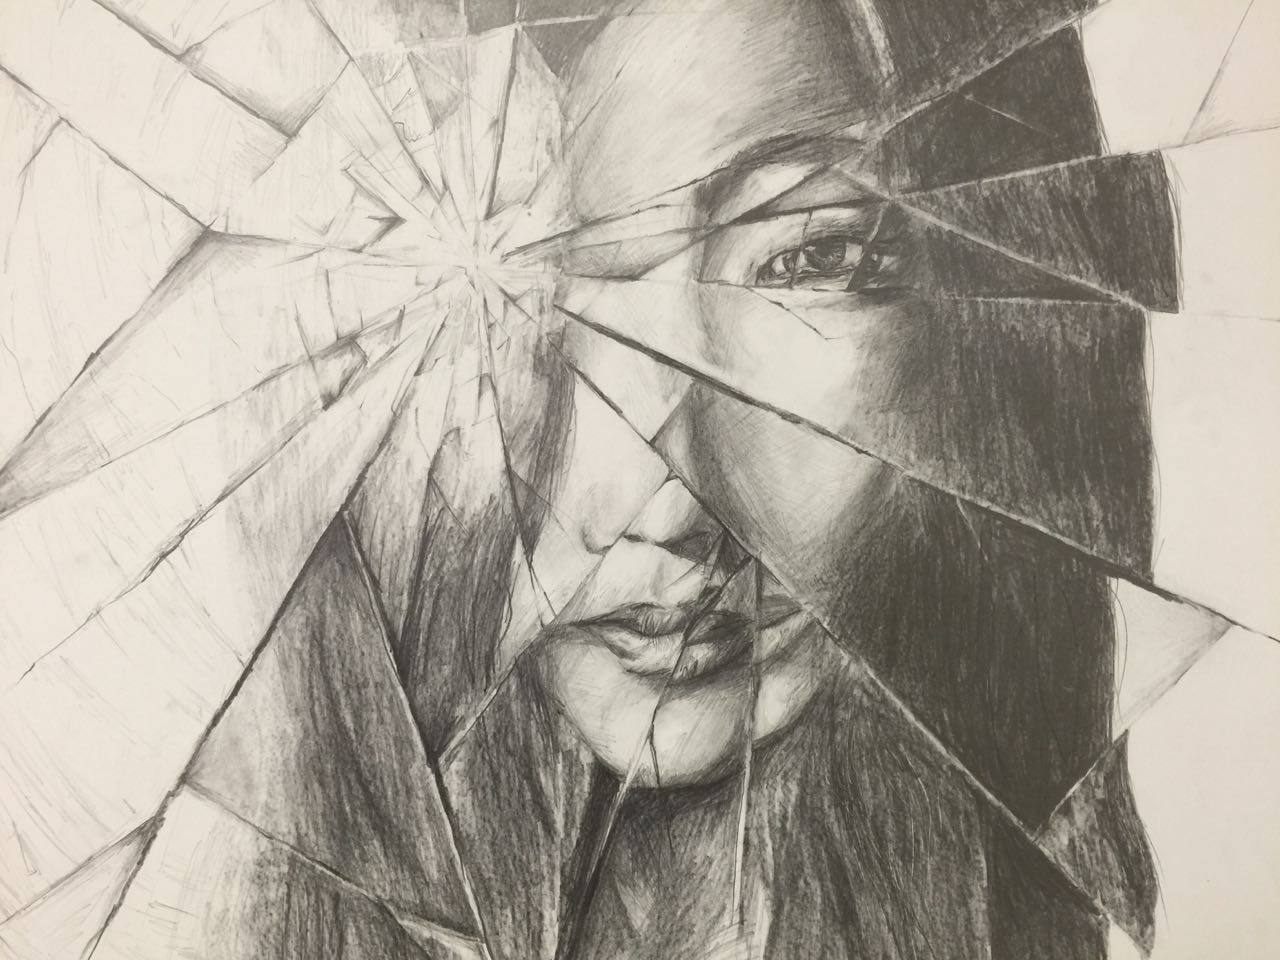 Broken Reflection, by Lucy Du '20